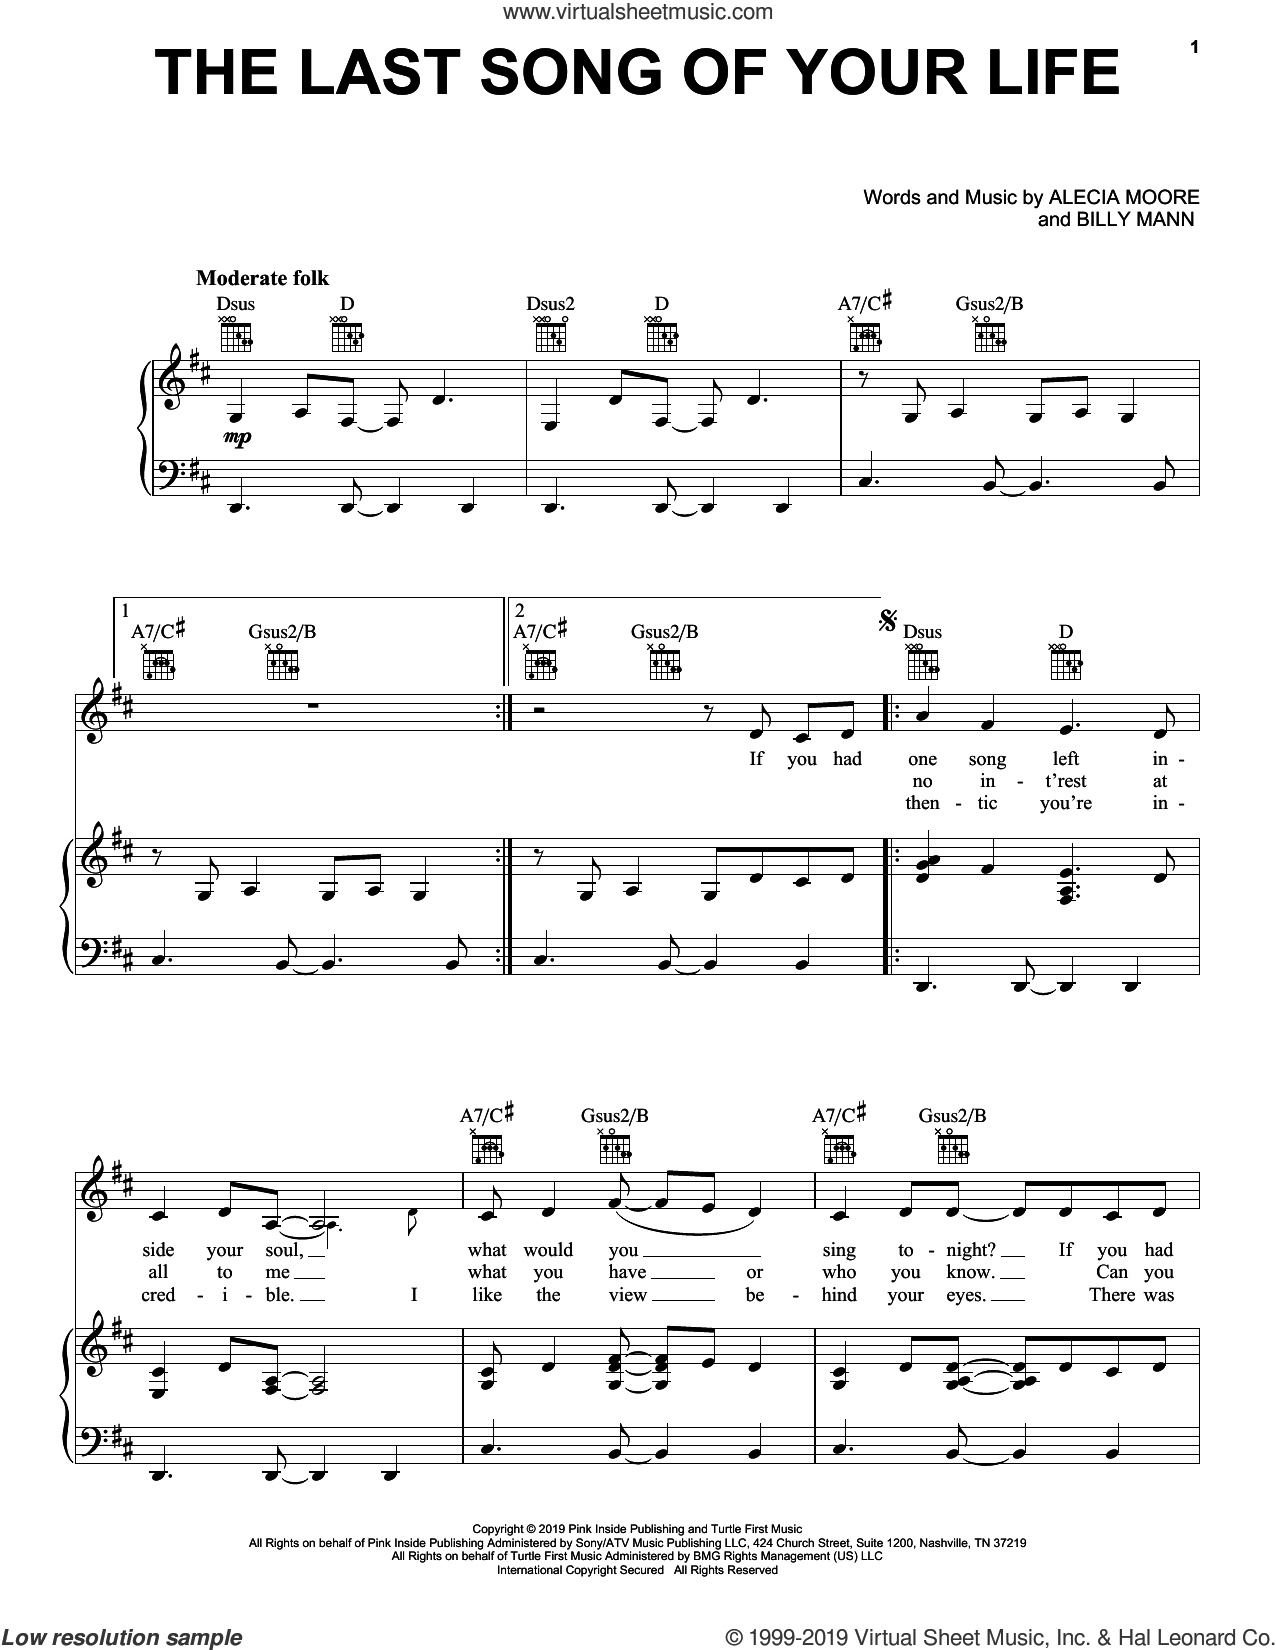 The Last Song Of Your Life sheet music for voice, piano or guitar , P!nk, Alecia Moore and Billy Mann, intermediate skill level